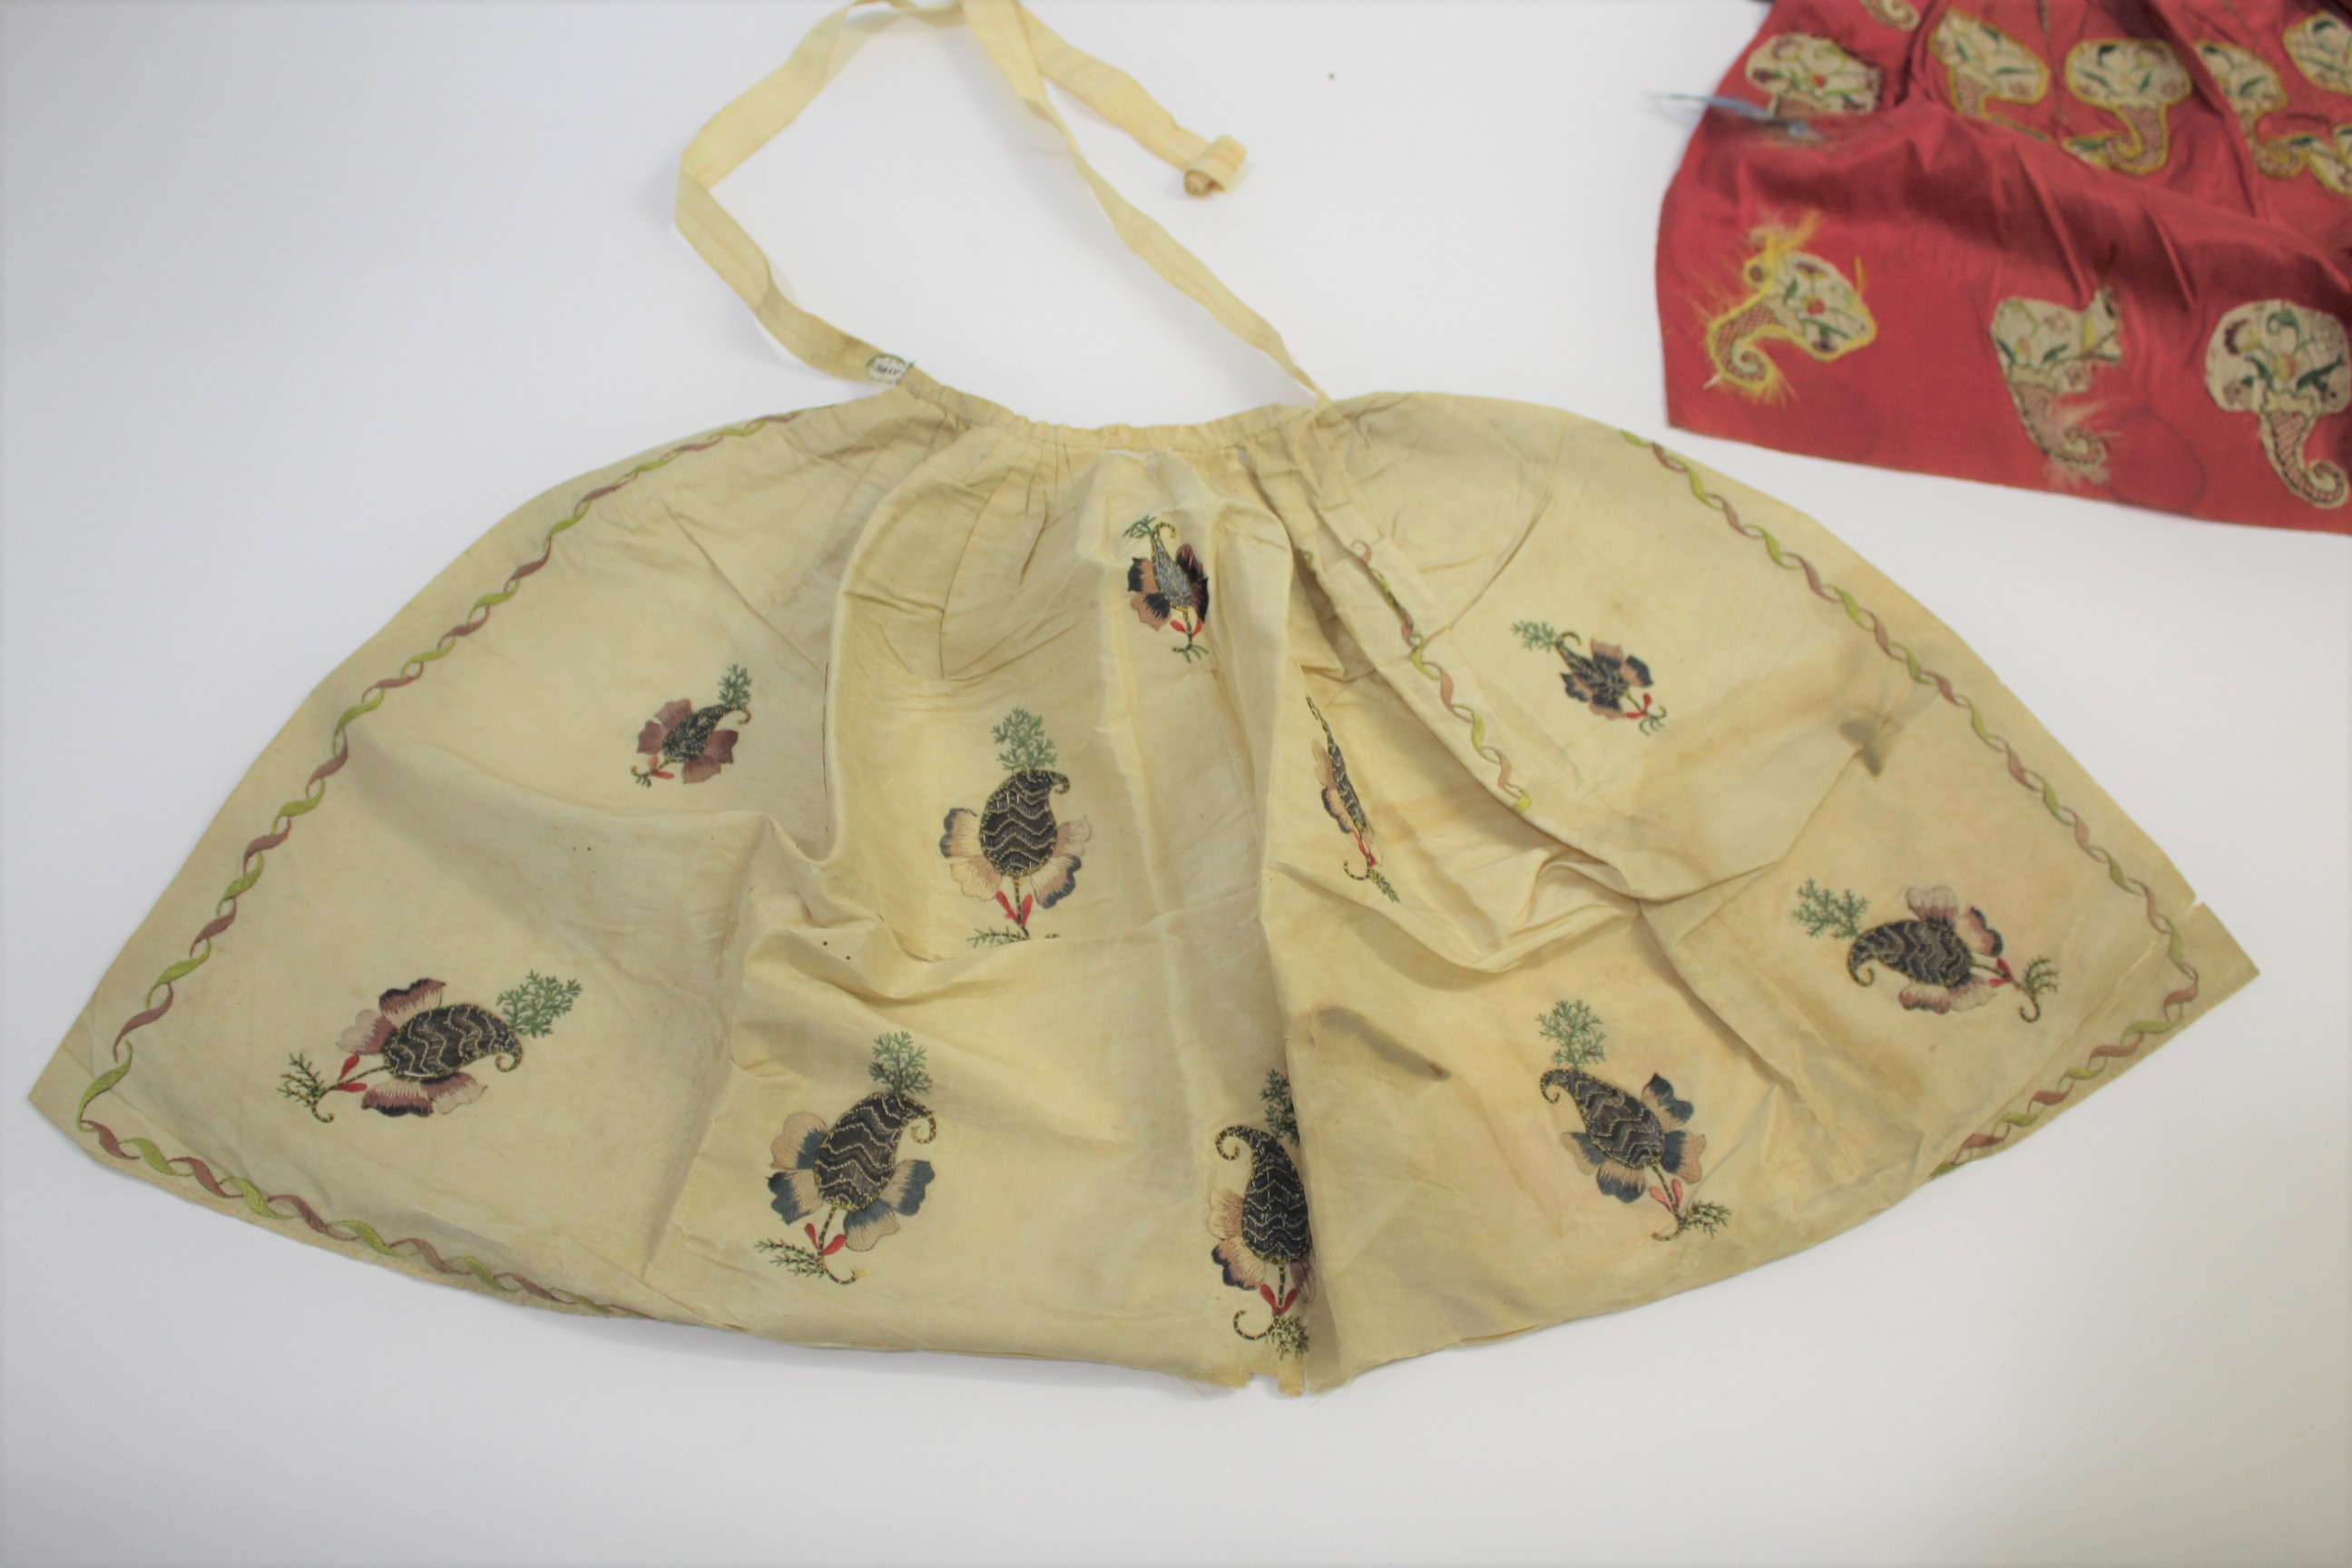 Lot 1855A - 19THC SILK EMBROIDERED APRON a small cream silk apron embroidered with stylised flowers worked in